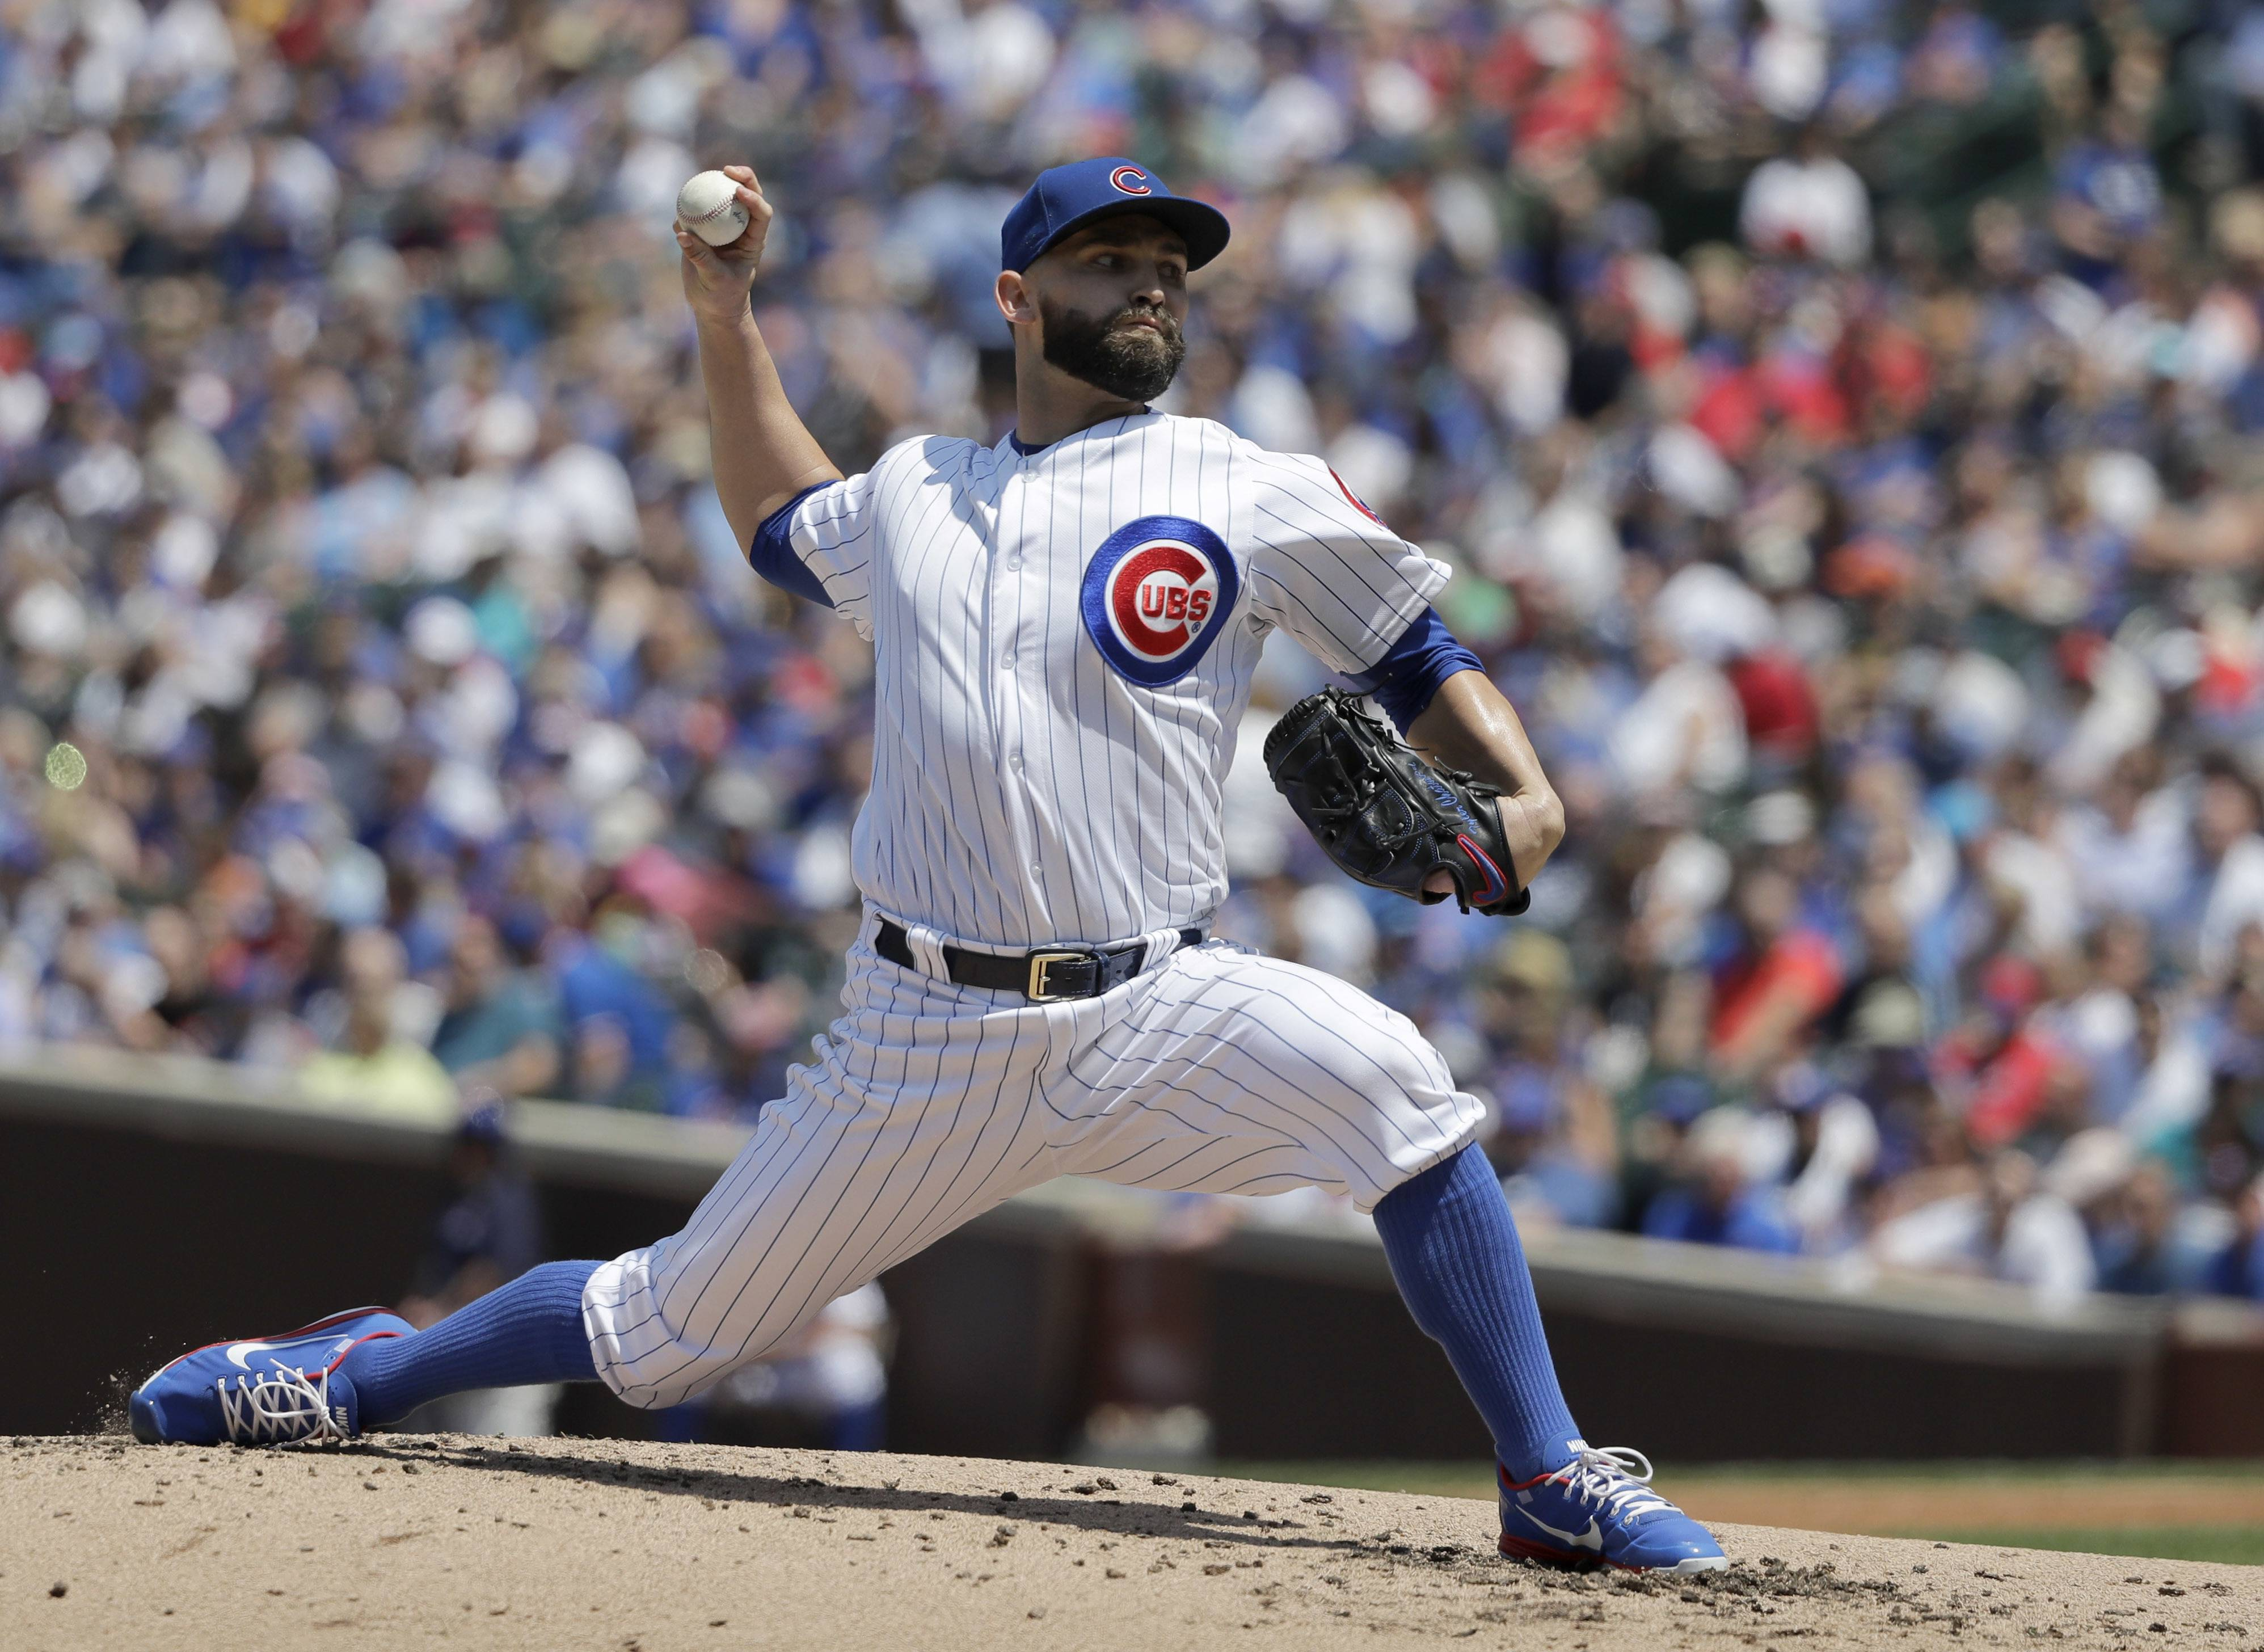 Cubs starting pitcher Tyler Chatwood delivers during the second inning against the Philadelphia Phillies Thursday. Chatwood walked seven batters in only 4⅔ innings but the Cubs emerged with a 4-3 victory